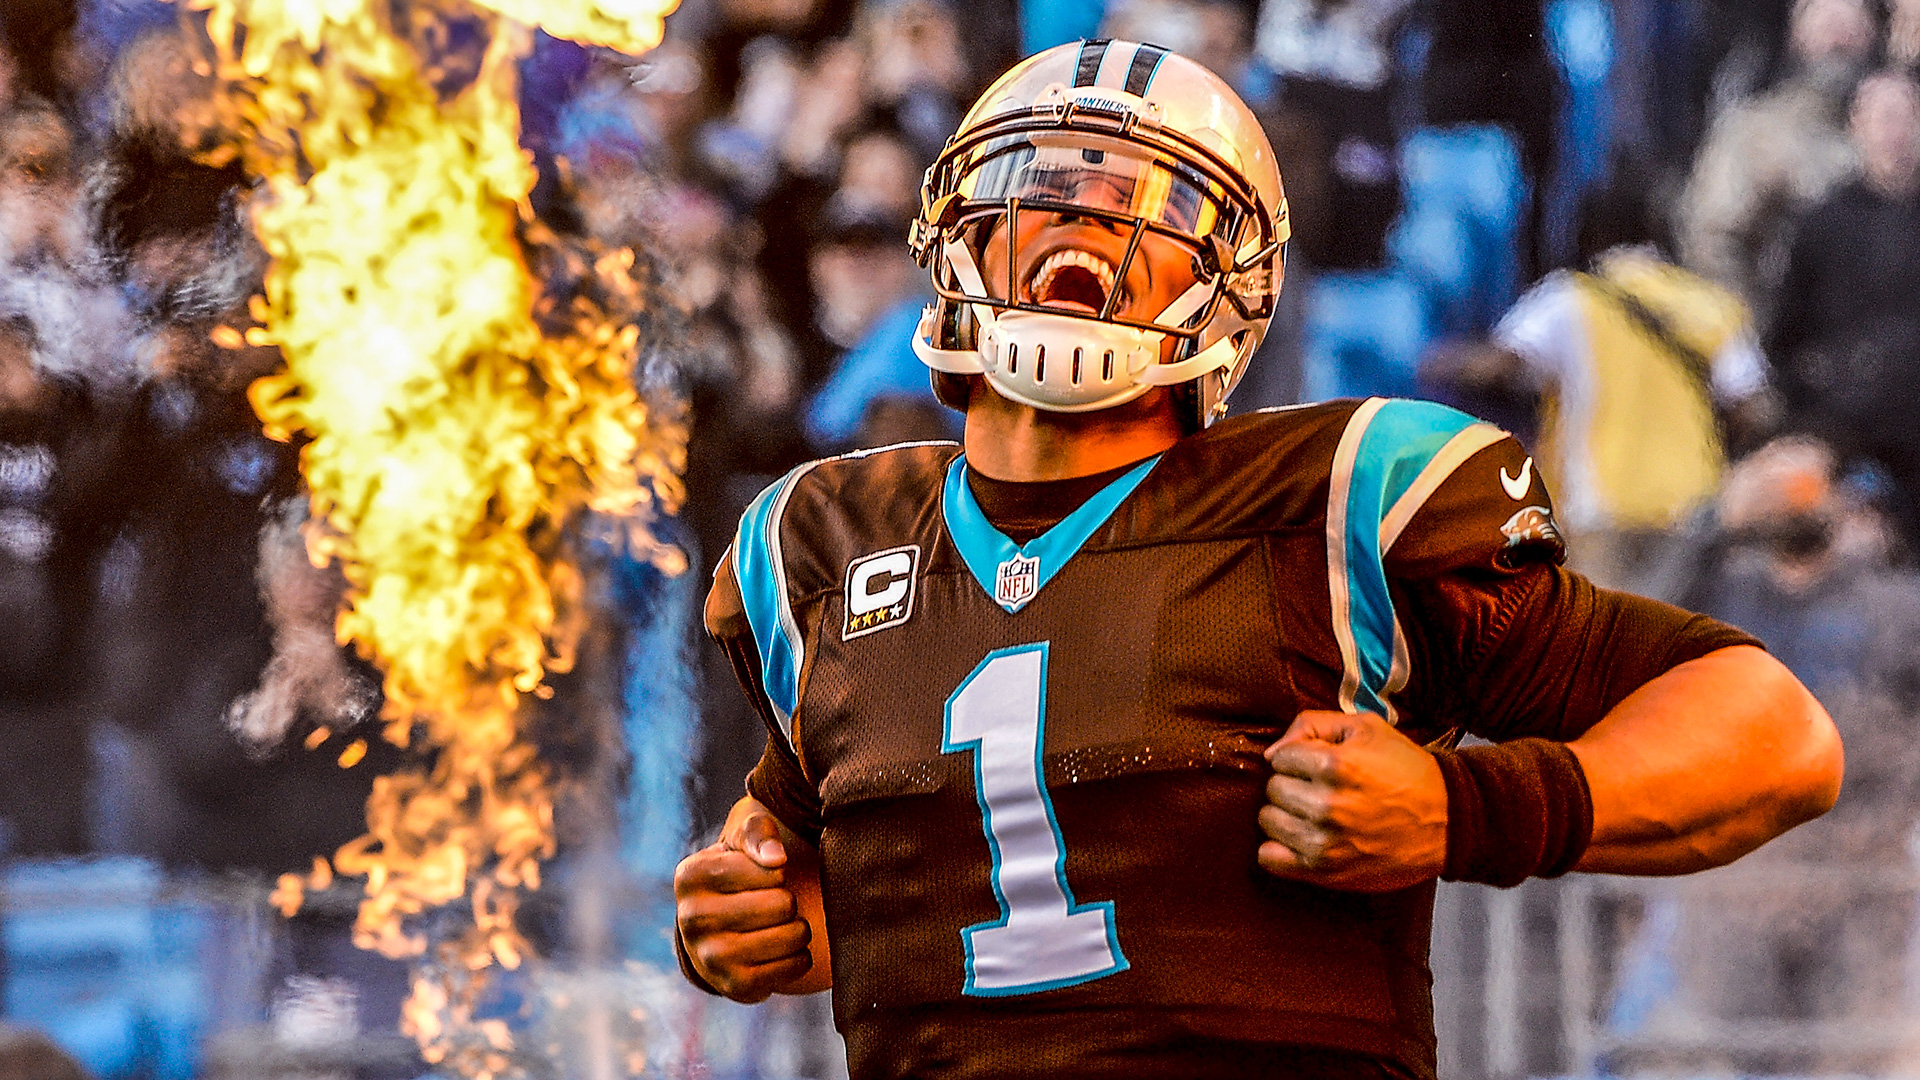 Cam Newton on camera: star power, style and celebrations of NFL's ...